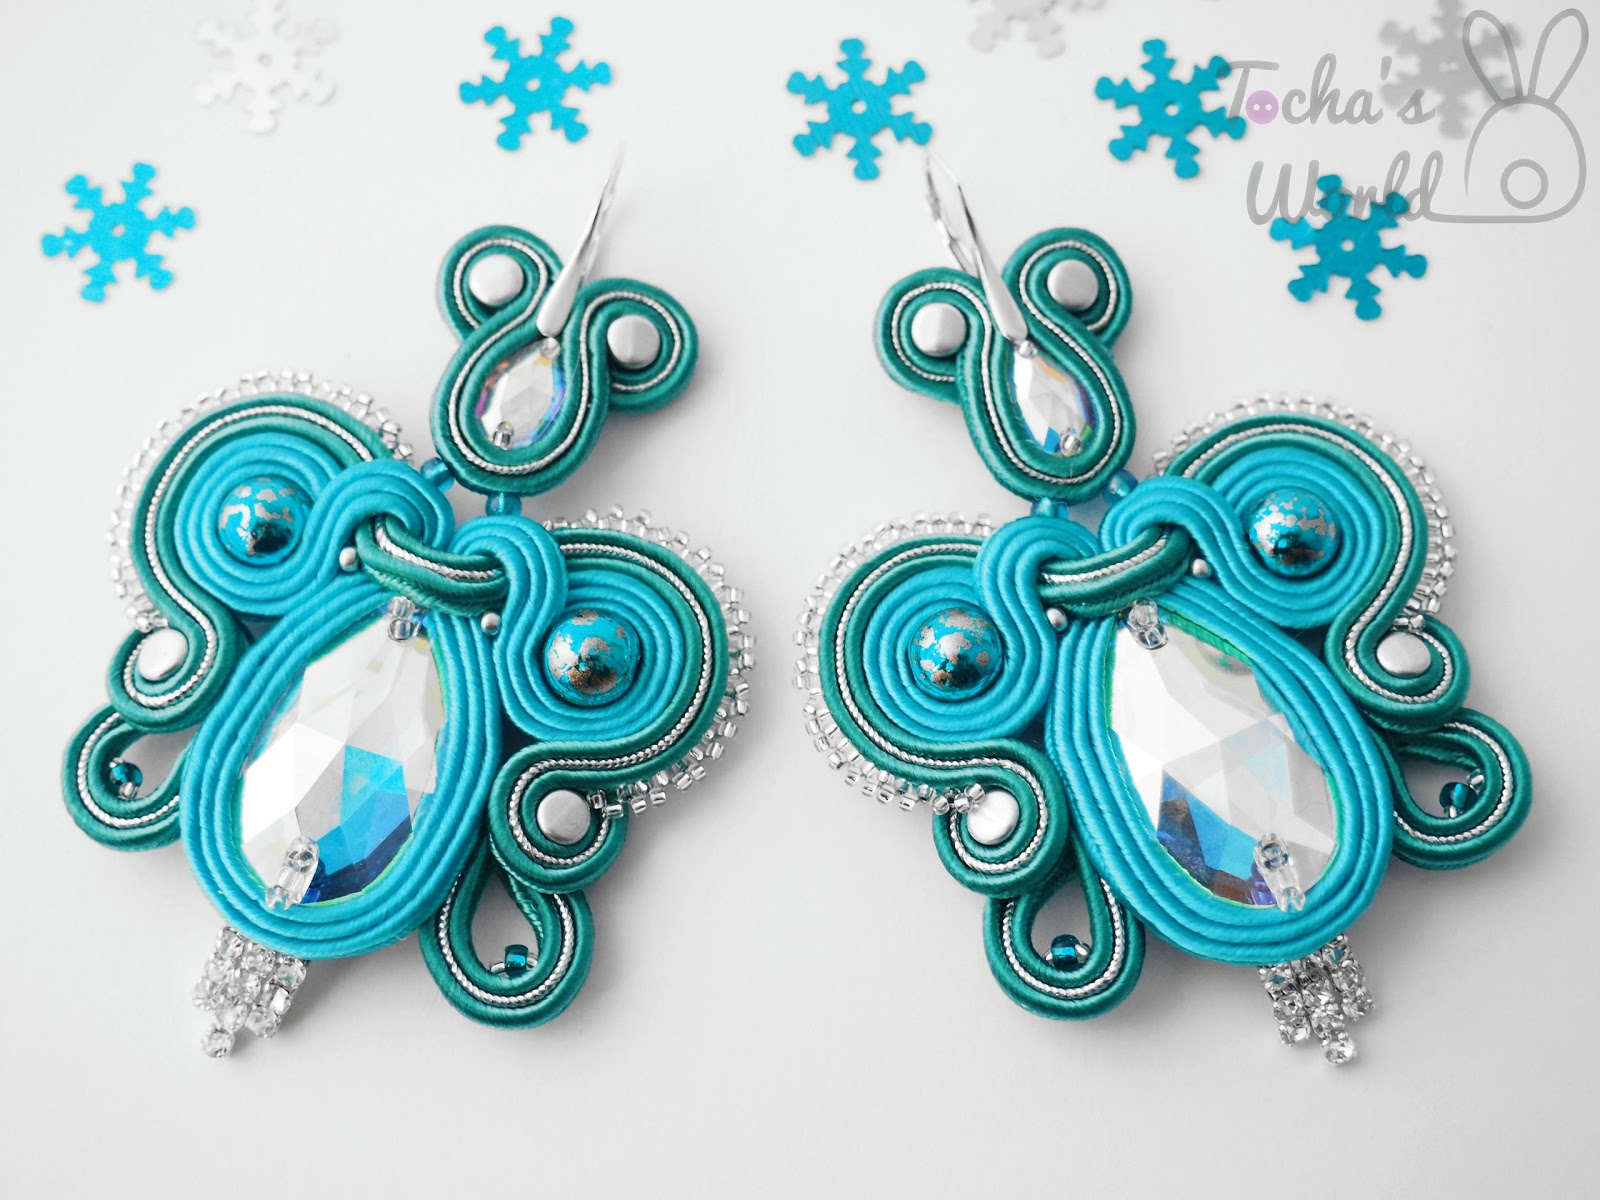 3230, AB, aurora borealis, beaded, butterfly, cupchain, Czech beads, earrings, jewellery, Preciosa Ornela, rhinestone, soutache, sterling silver, sutasz, Swarovski, Vintra Papilio, winter, Winter Wonderland, homesick, Tocha's World